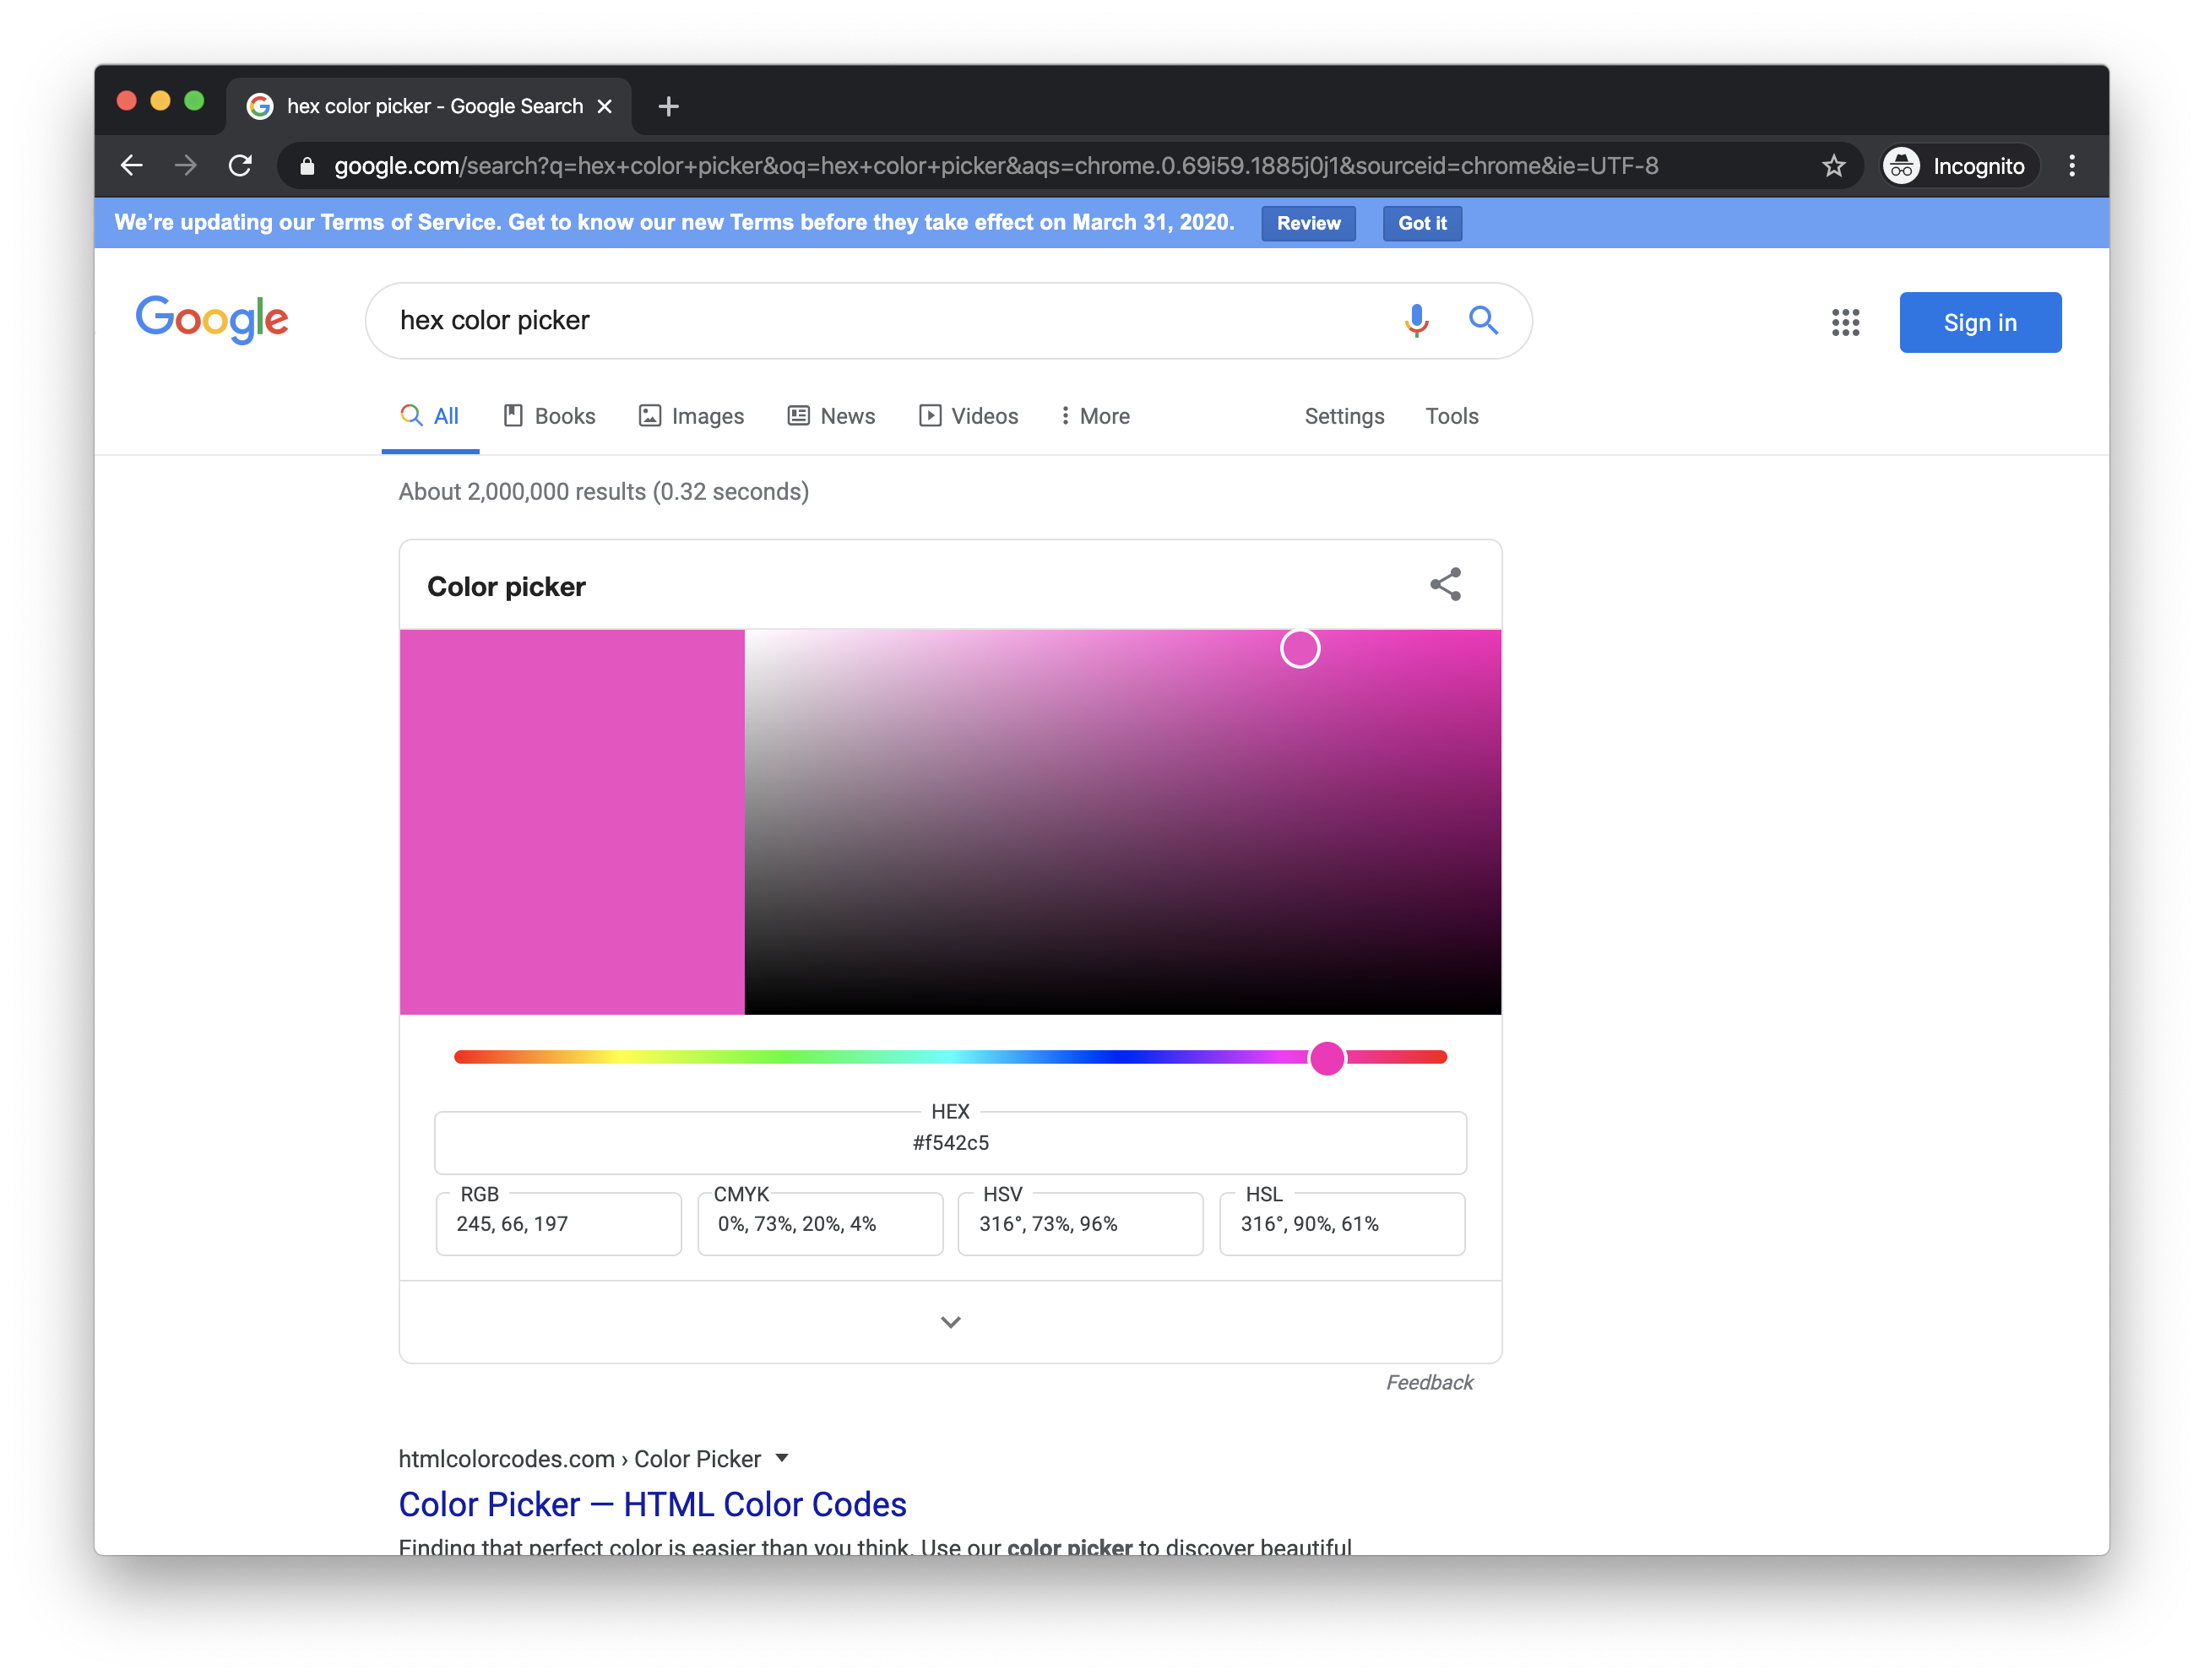 Google's hex color picker